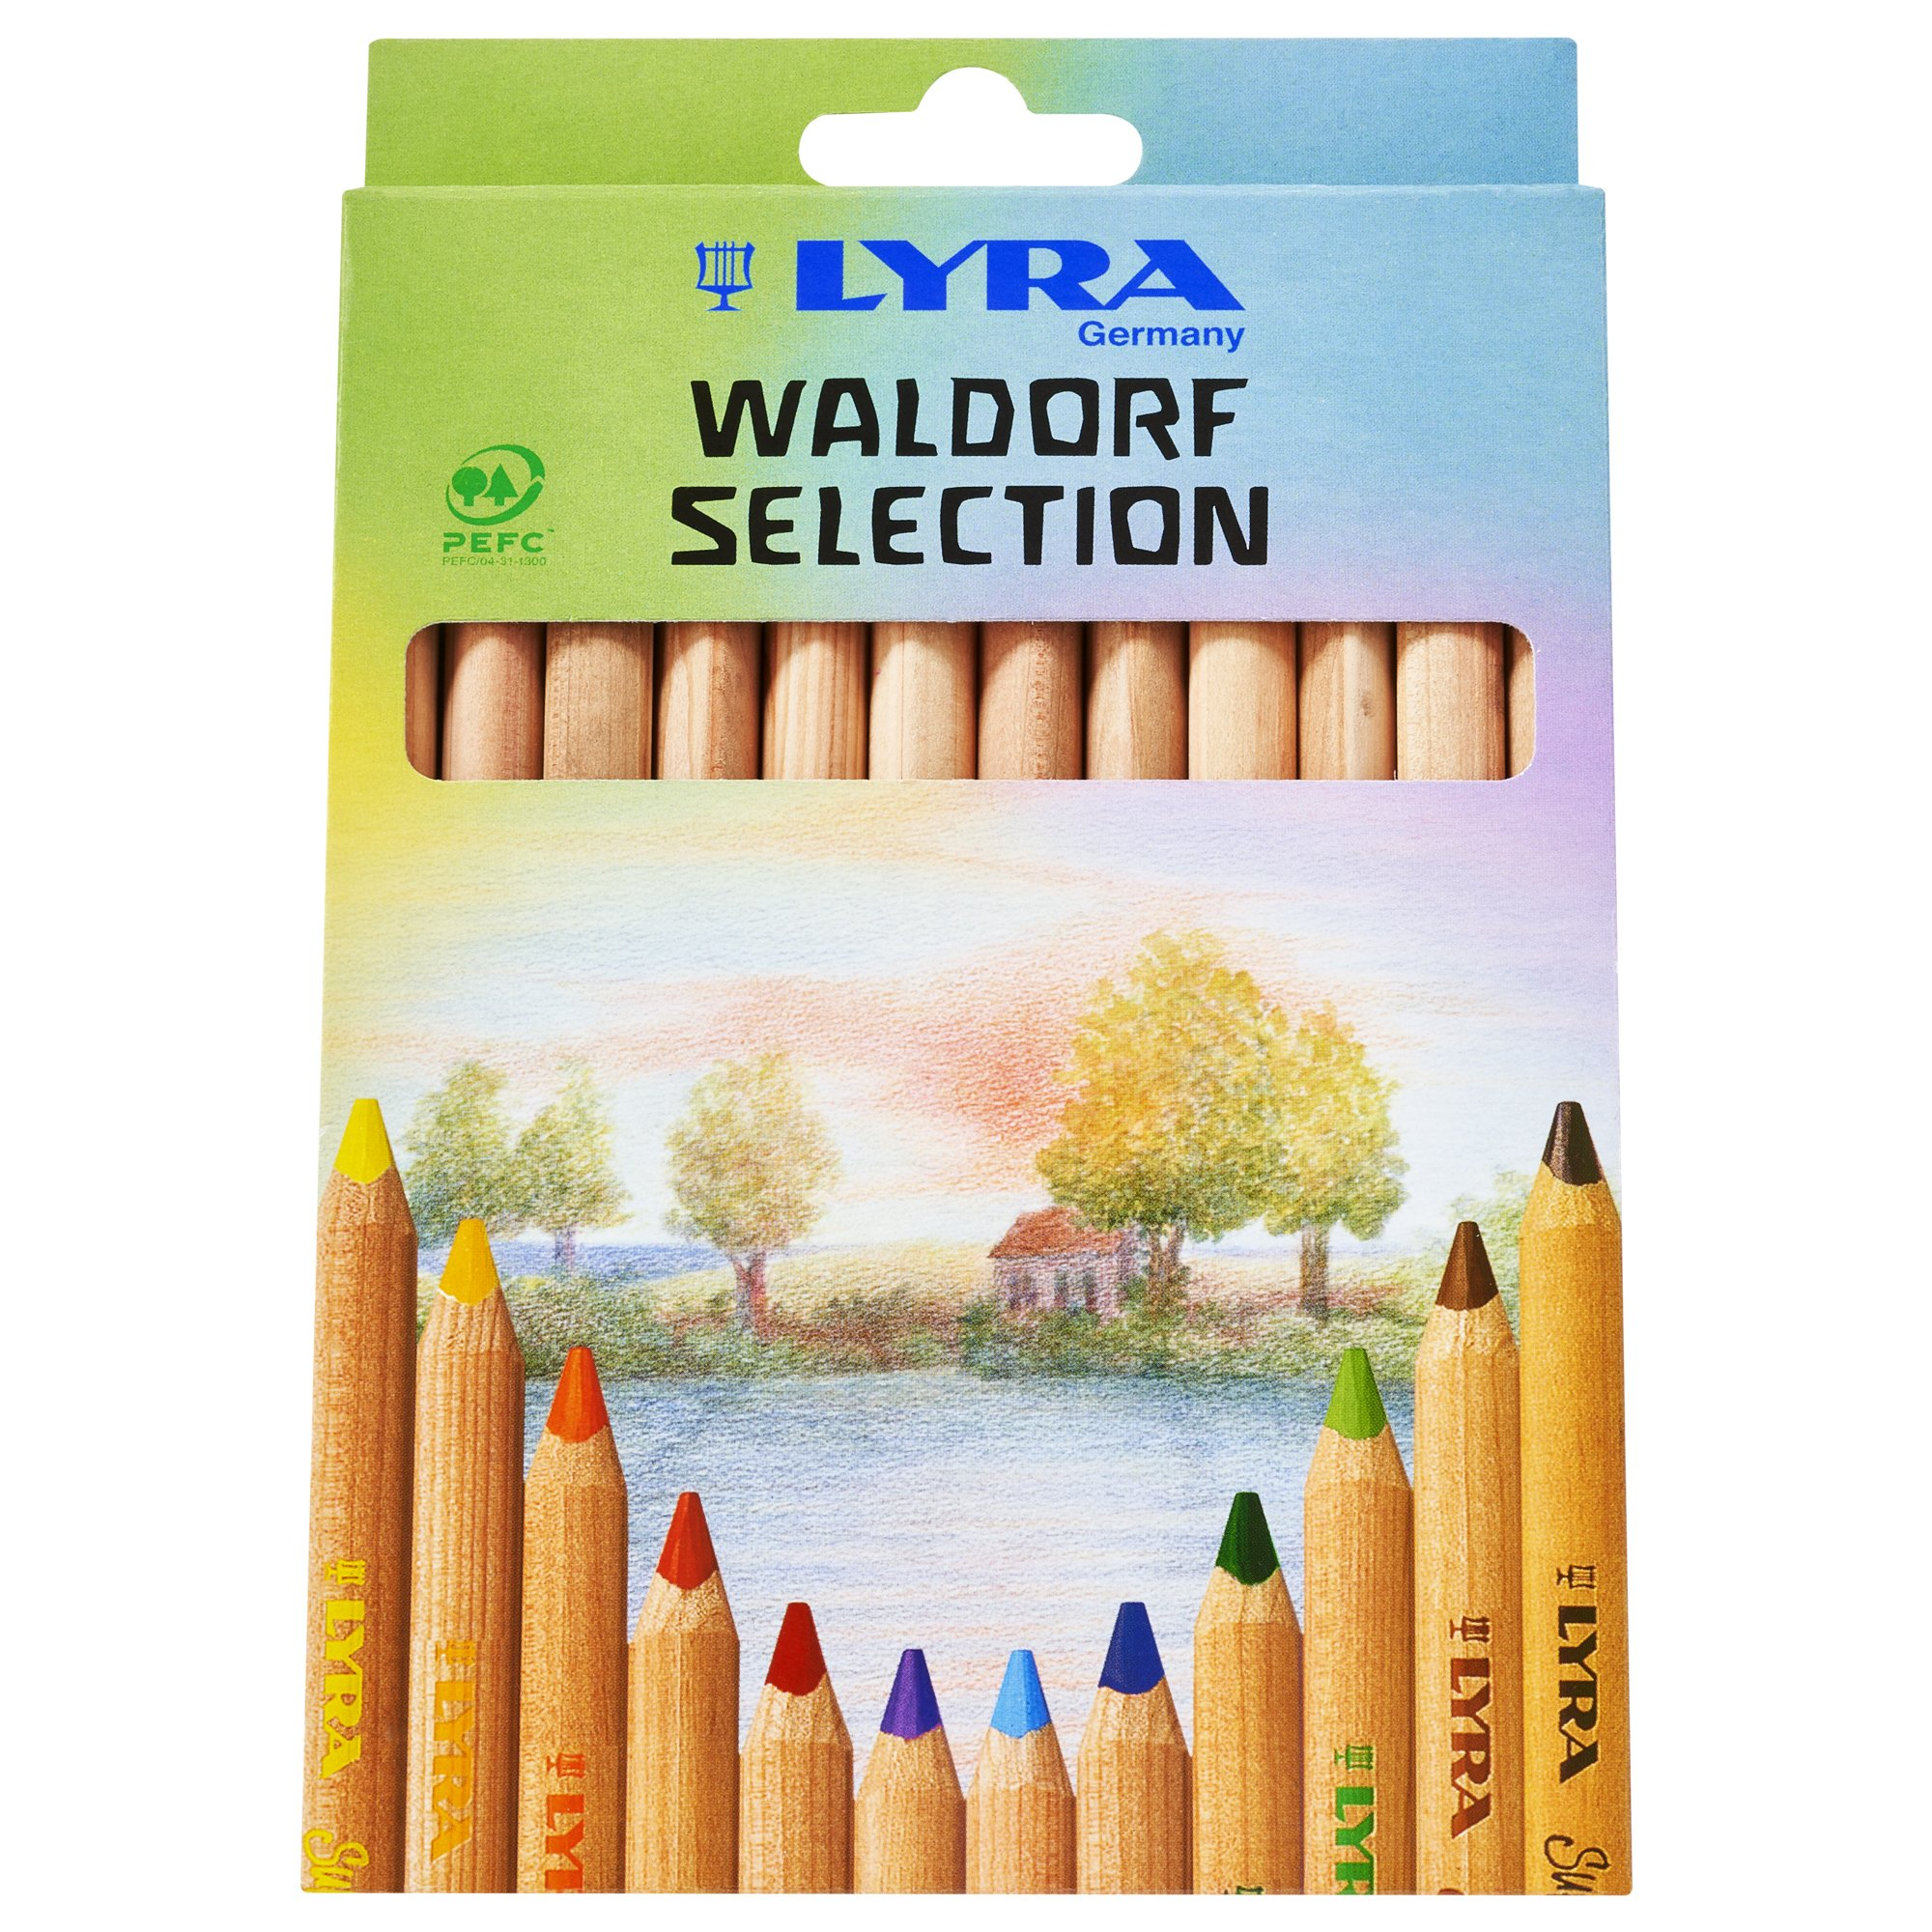 LYRA Waldorf Selection Giant Triangular Colored Pencil, Unlacquered, 6.25 Millimeter Cores, Assorted Colors, 12-Pack (3711121) by Lyra